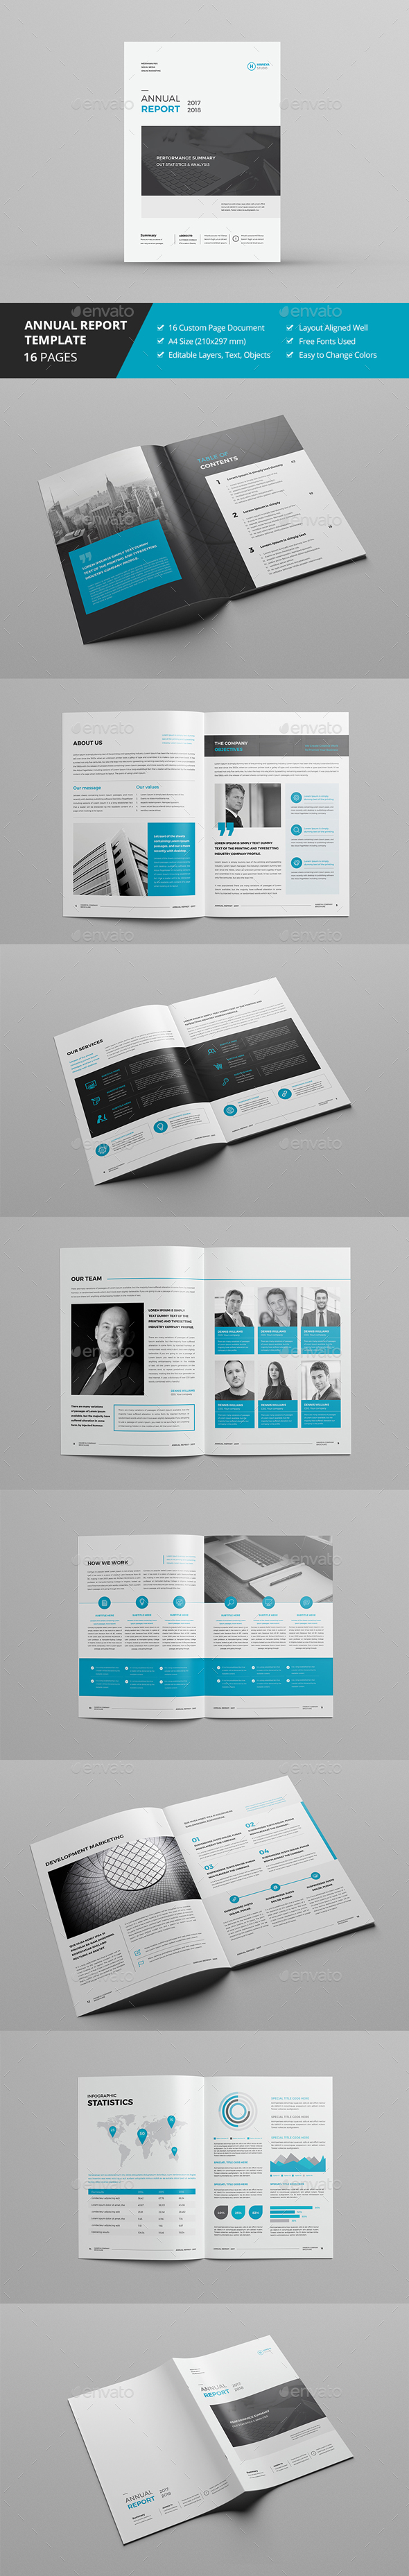 Annual Report 16 Pages - Corporate Brochures